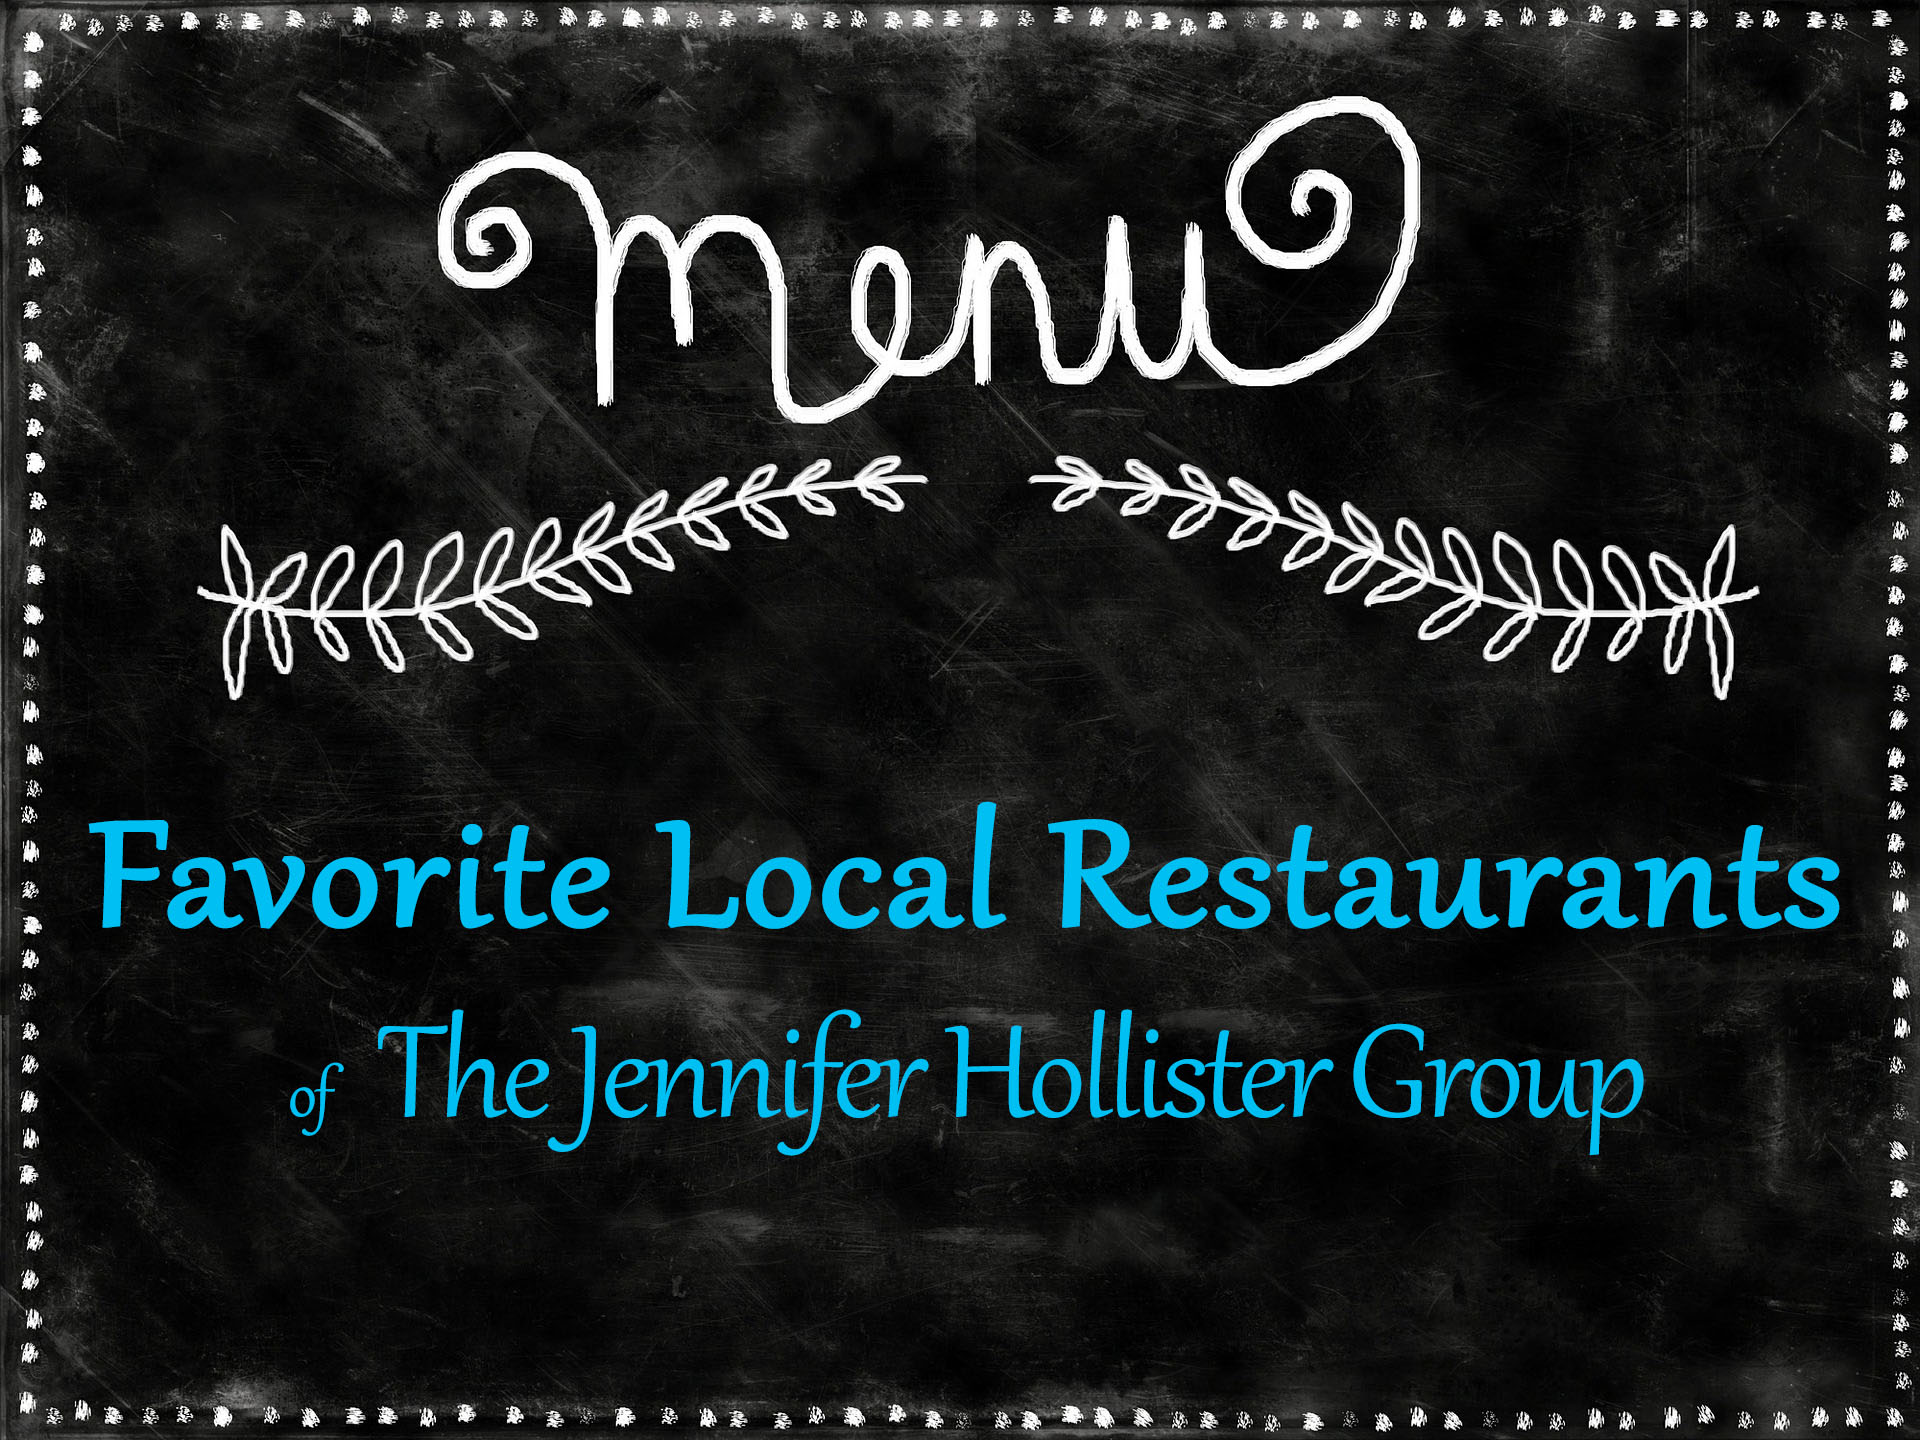 Best Local Restaurants According to The Jennifer Hollister Group